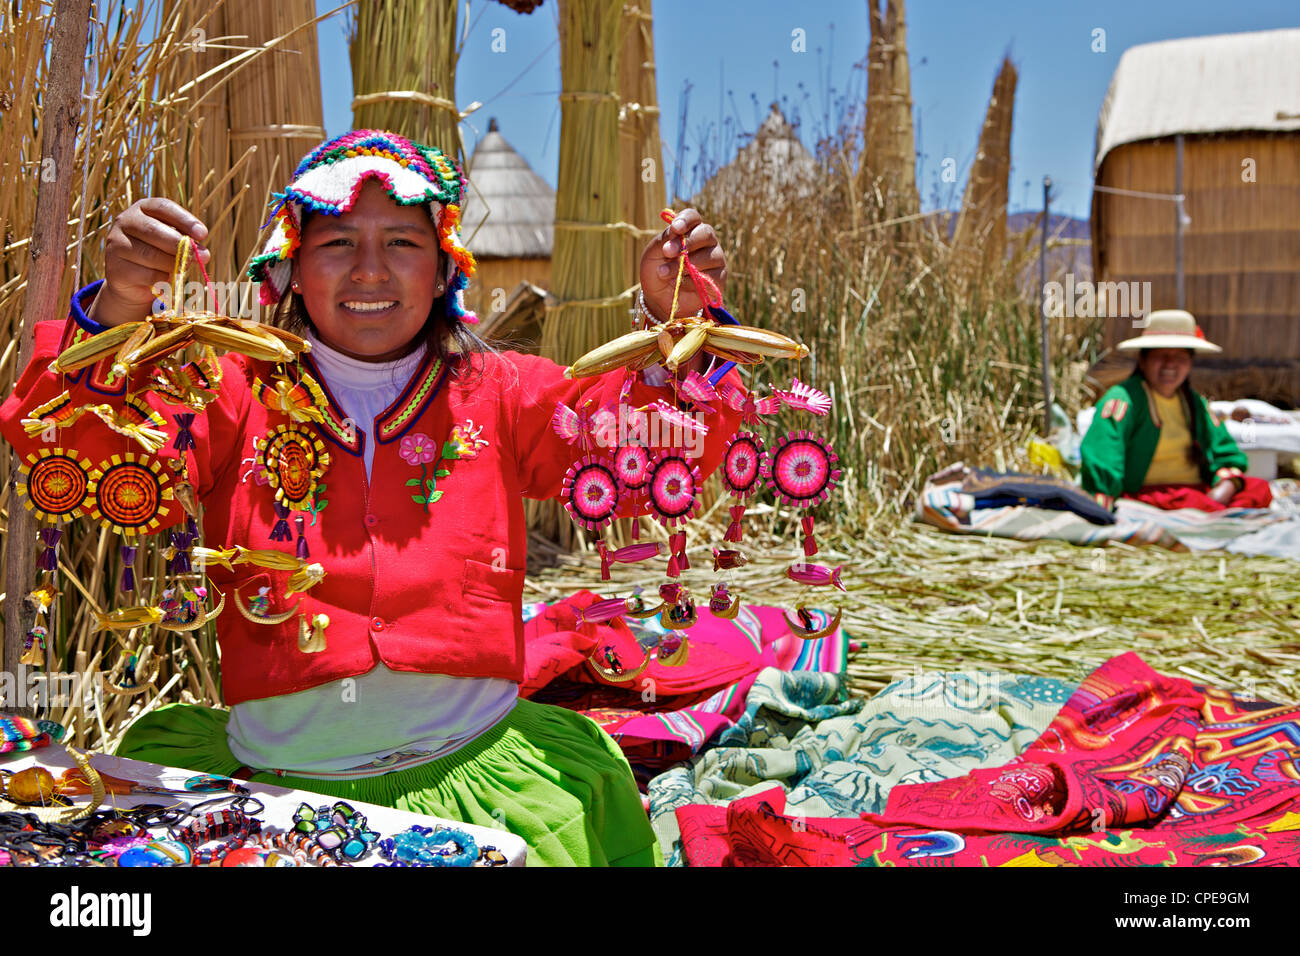 Portrait of a Uros Indian woman selling souvenirs, Islas Flotantes (Floating Islands), Lake Titicaca, Peru, South - Stock Image